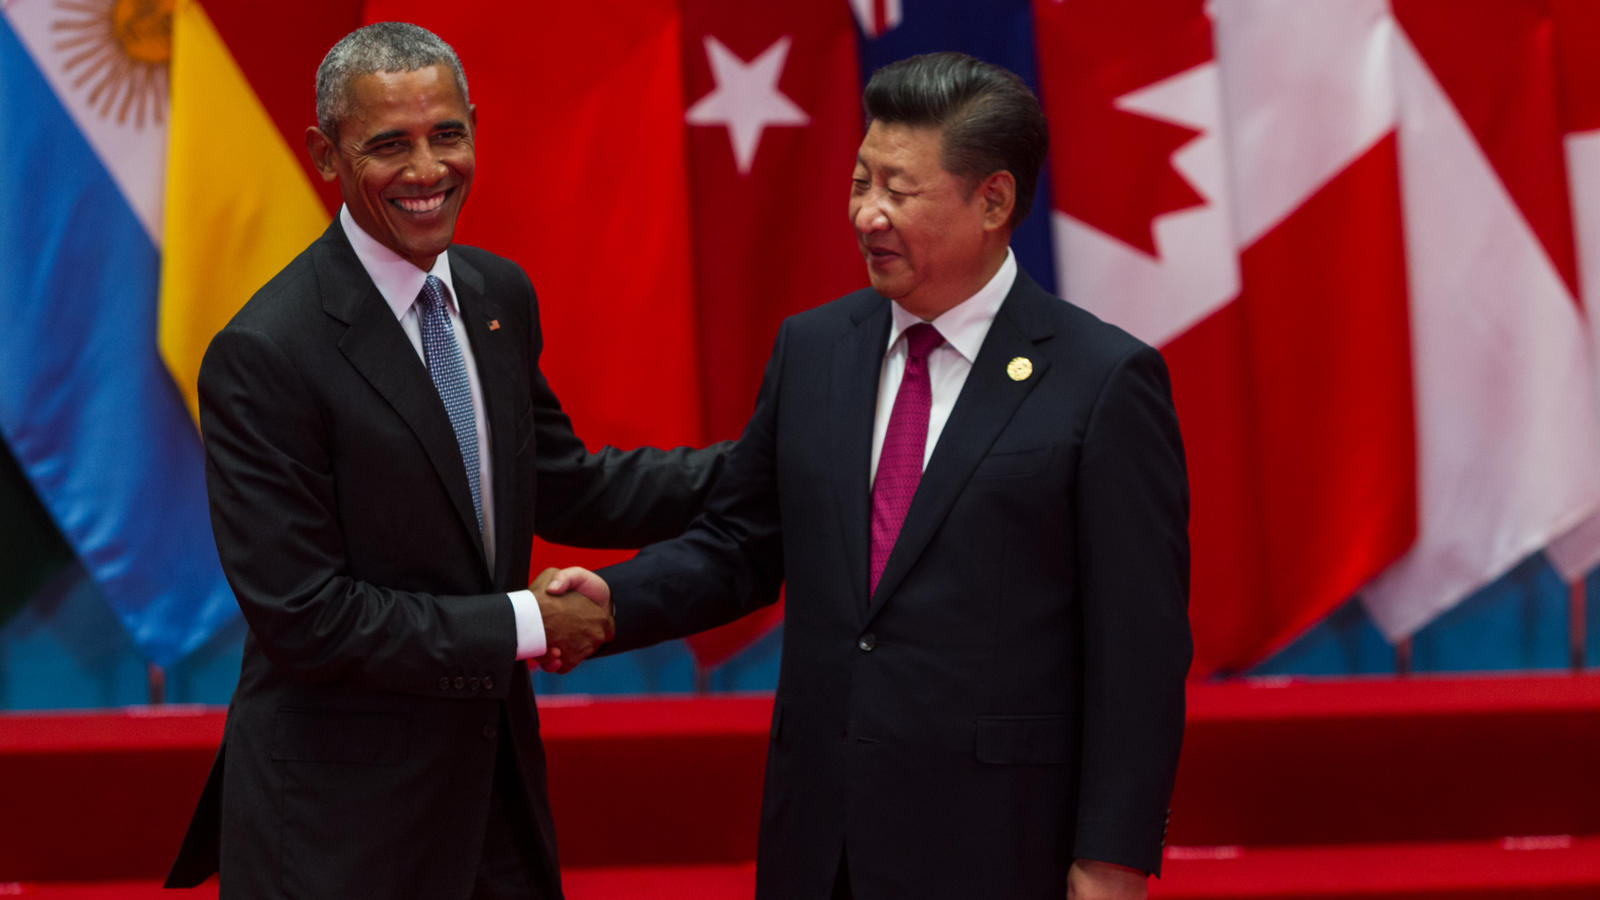 President Obama shaking hands with China's President Xi Jinping